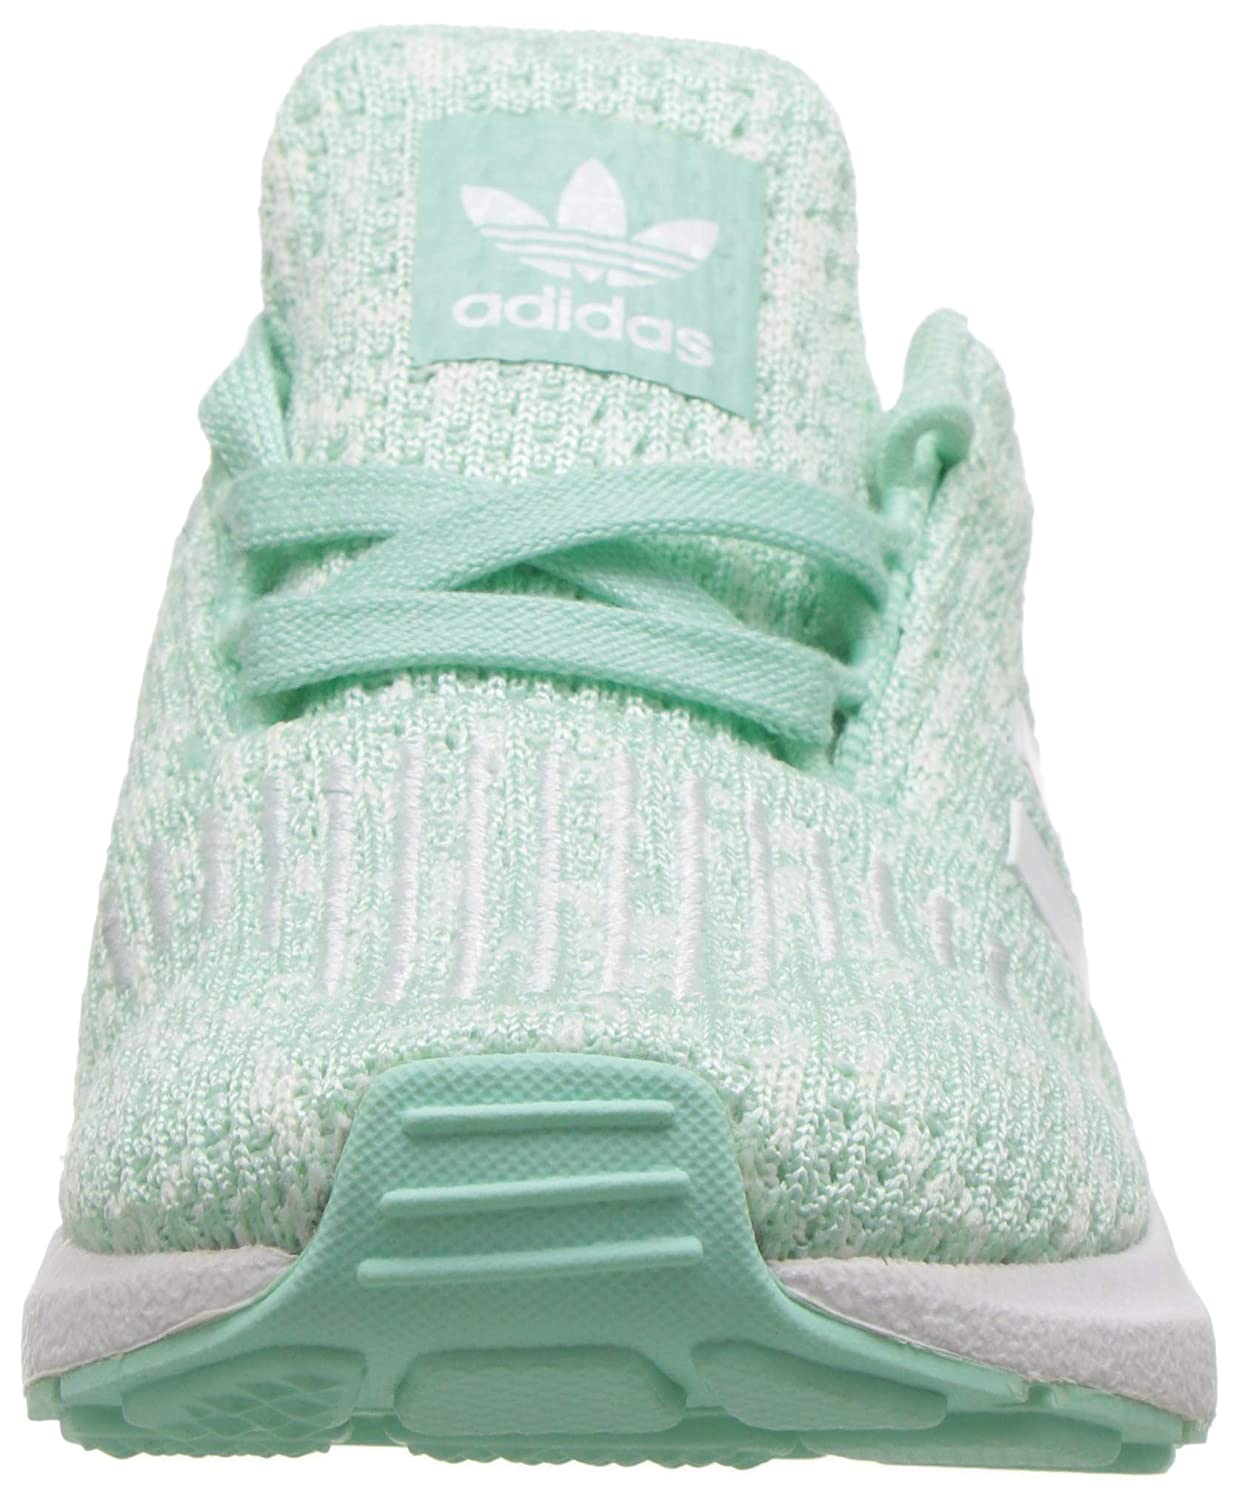 online store 39e52 ccb3b adidas Originals Baby Swift Running Shoe, Clear Mint White aero Blue, 6K M  US Toddler  Amazon.co.uk  Shoes   Bags